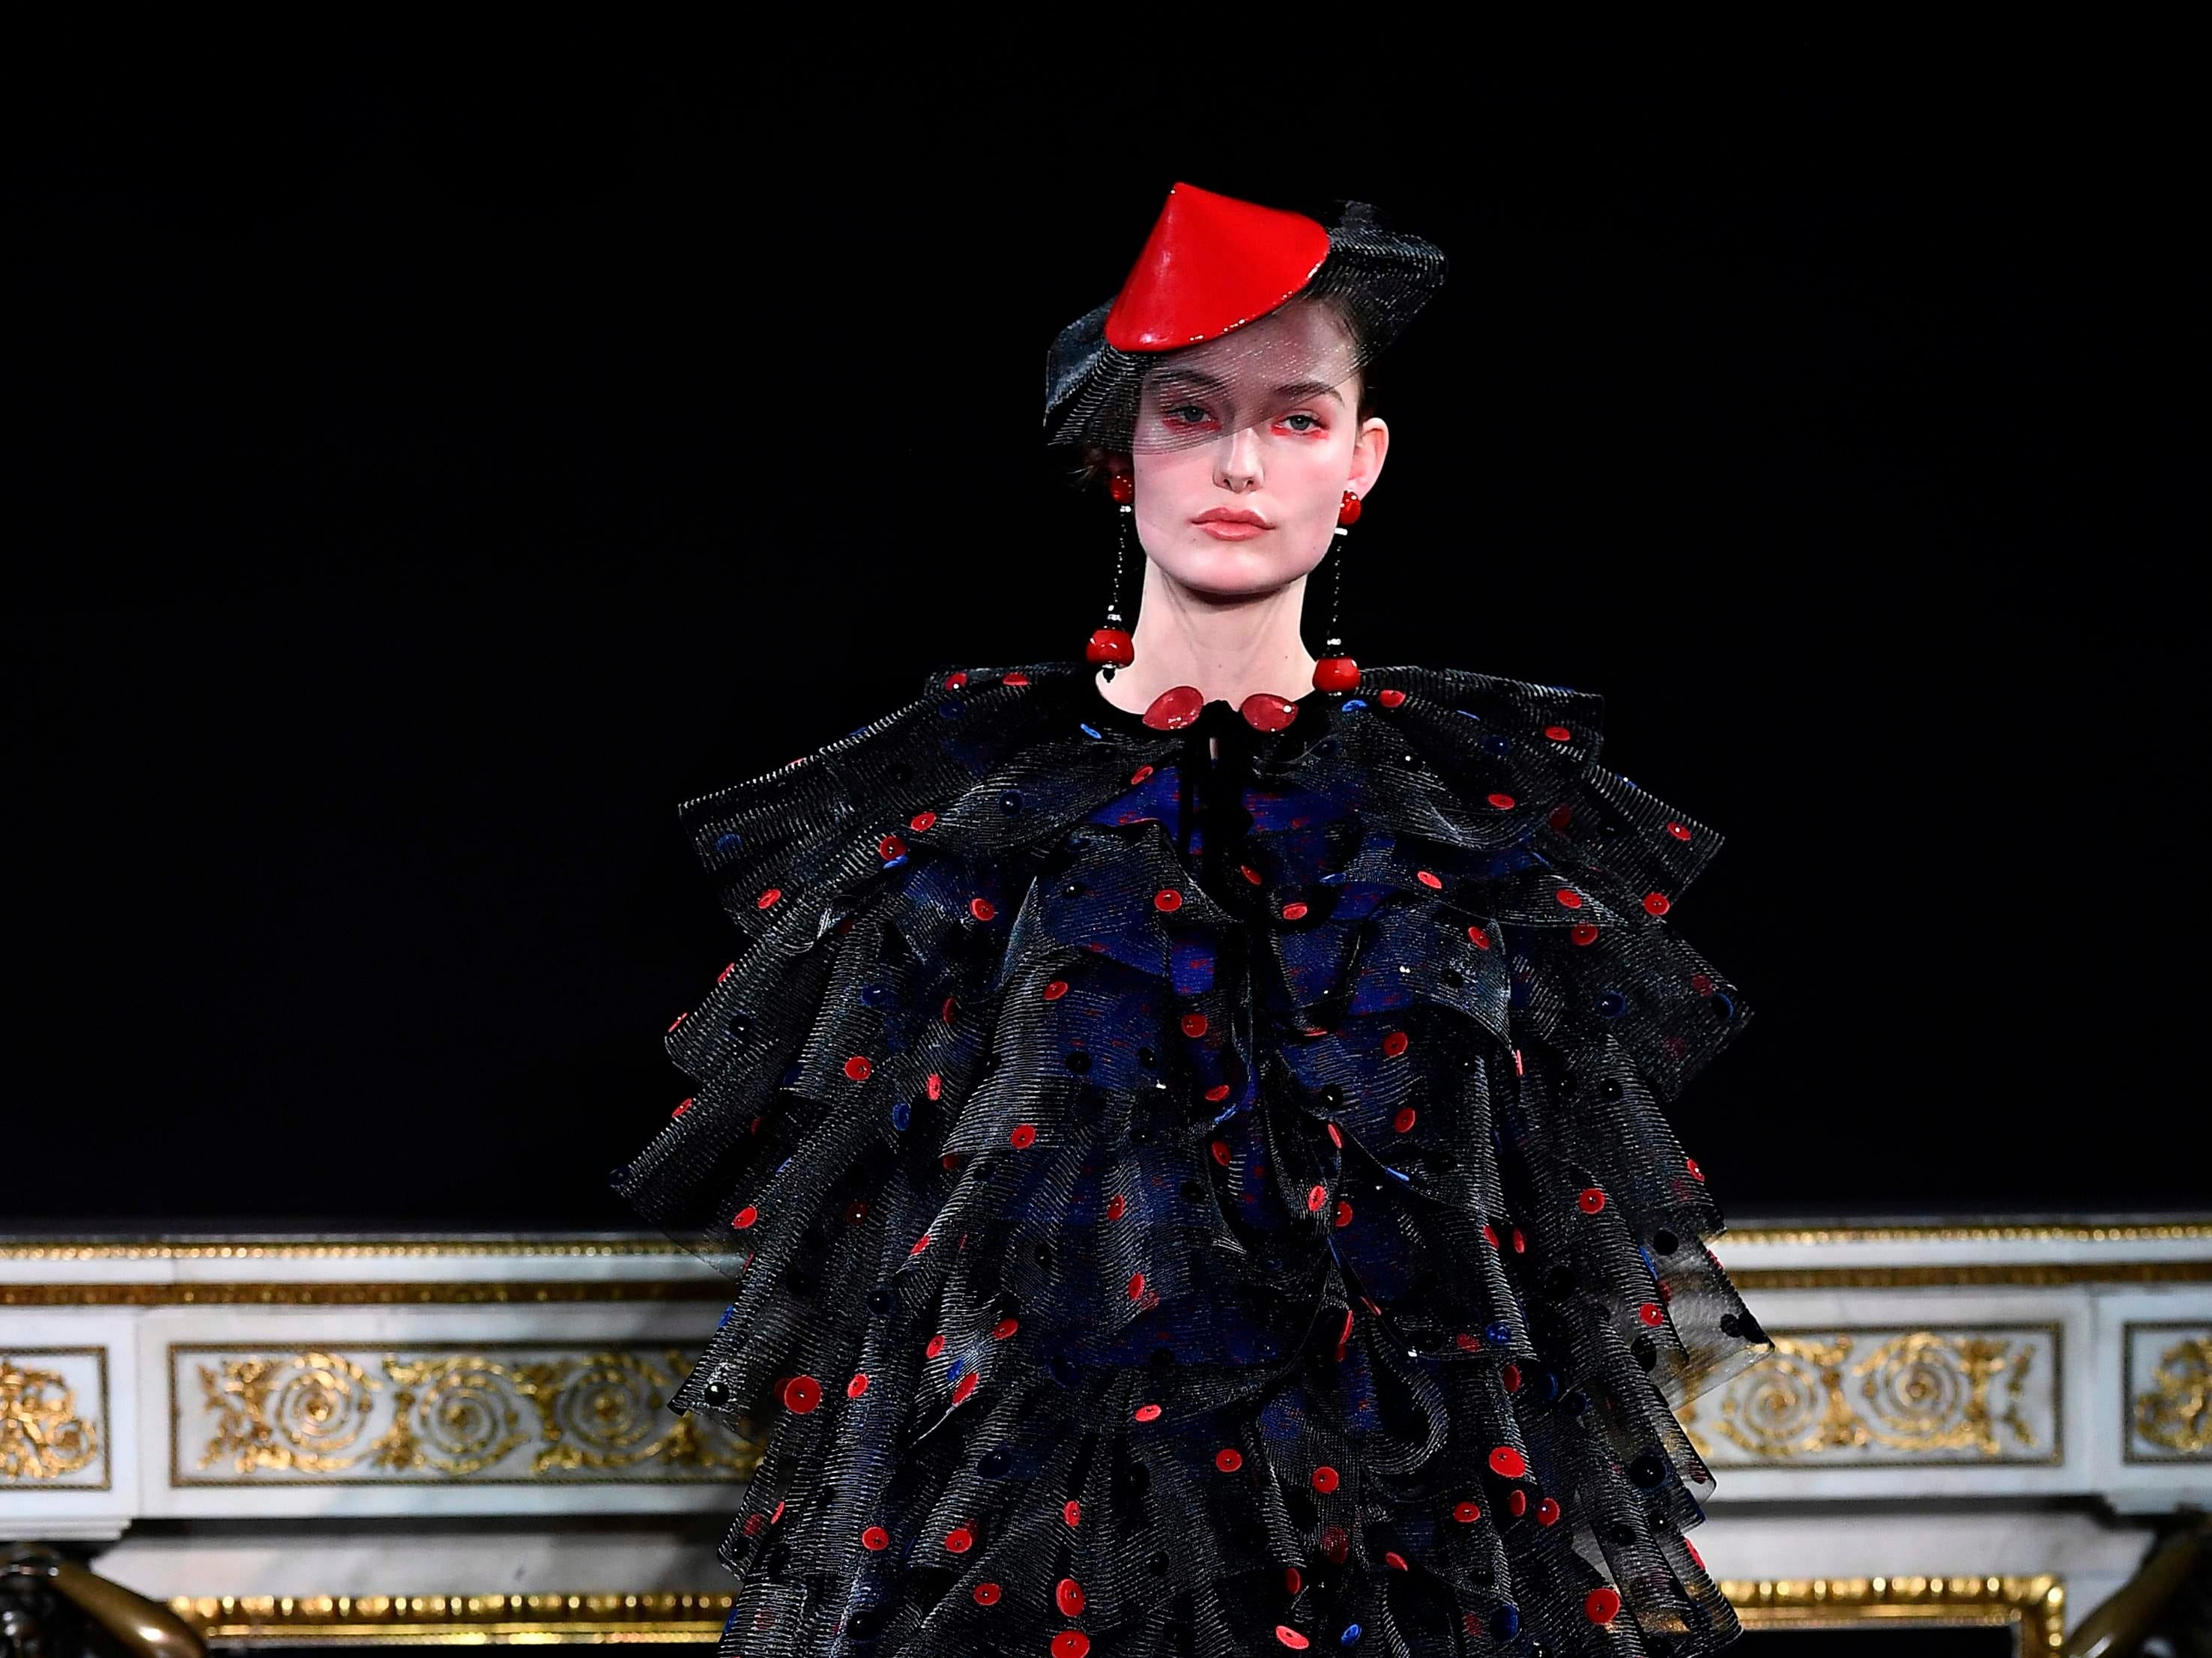 A model presents a creation by Giorgio Armani during the 2019 Spring-Summer Haute Couture collection fashion show in Paris, on January 22, 2019. (Photo by Anne-Christine POUJOULAT / AFP)ANNE-CHRISTINE POUJOULAT/AFP/Getty Images ORIG FILE ID: AFP_1CI5AF